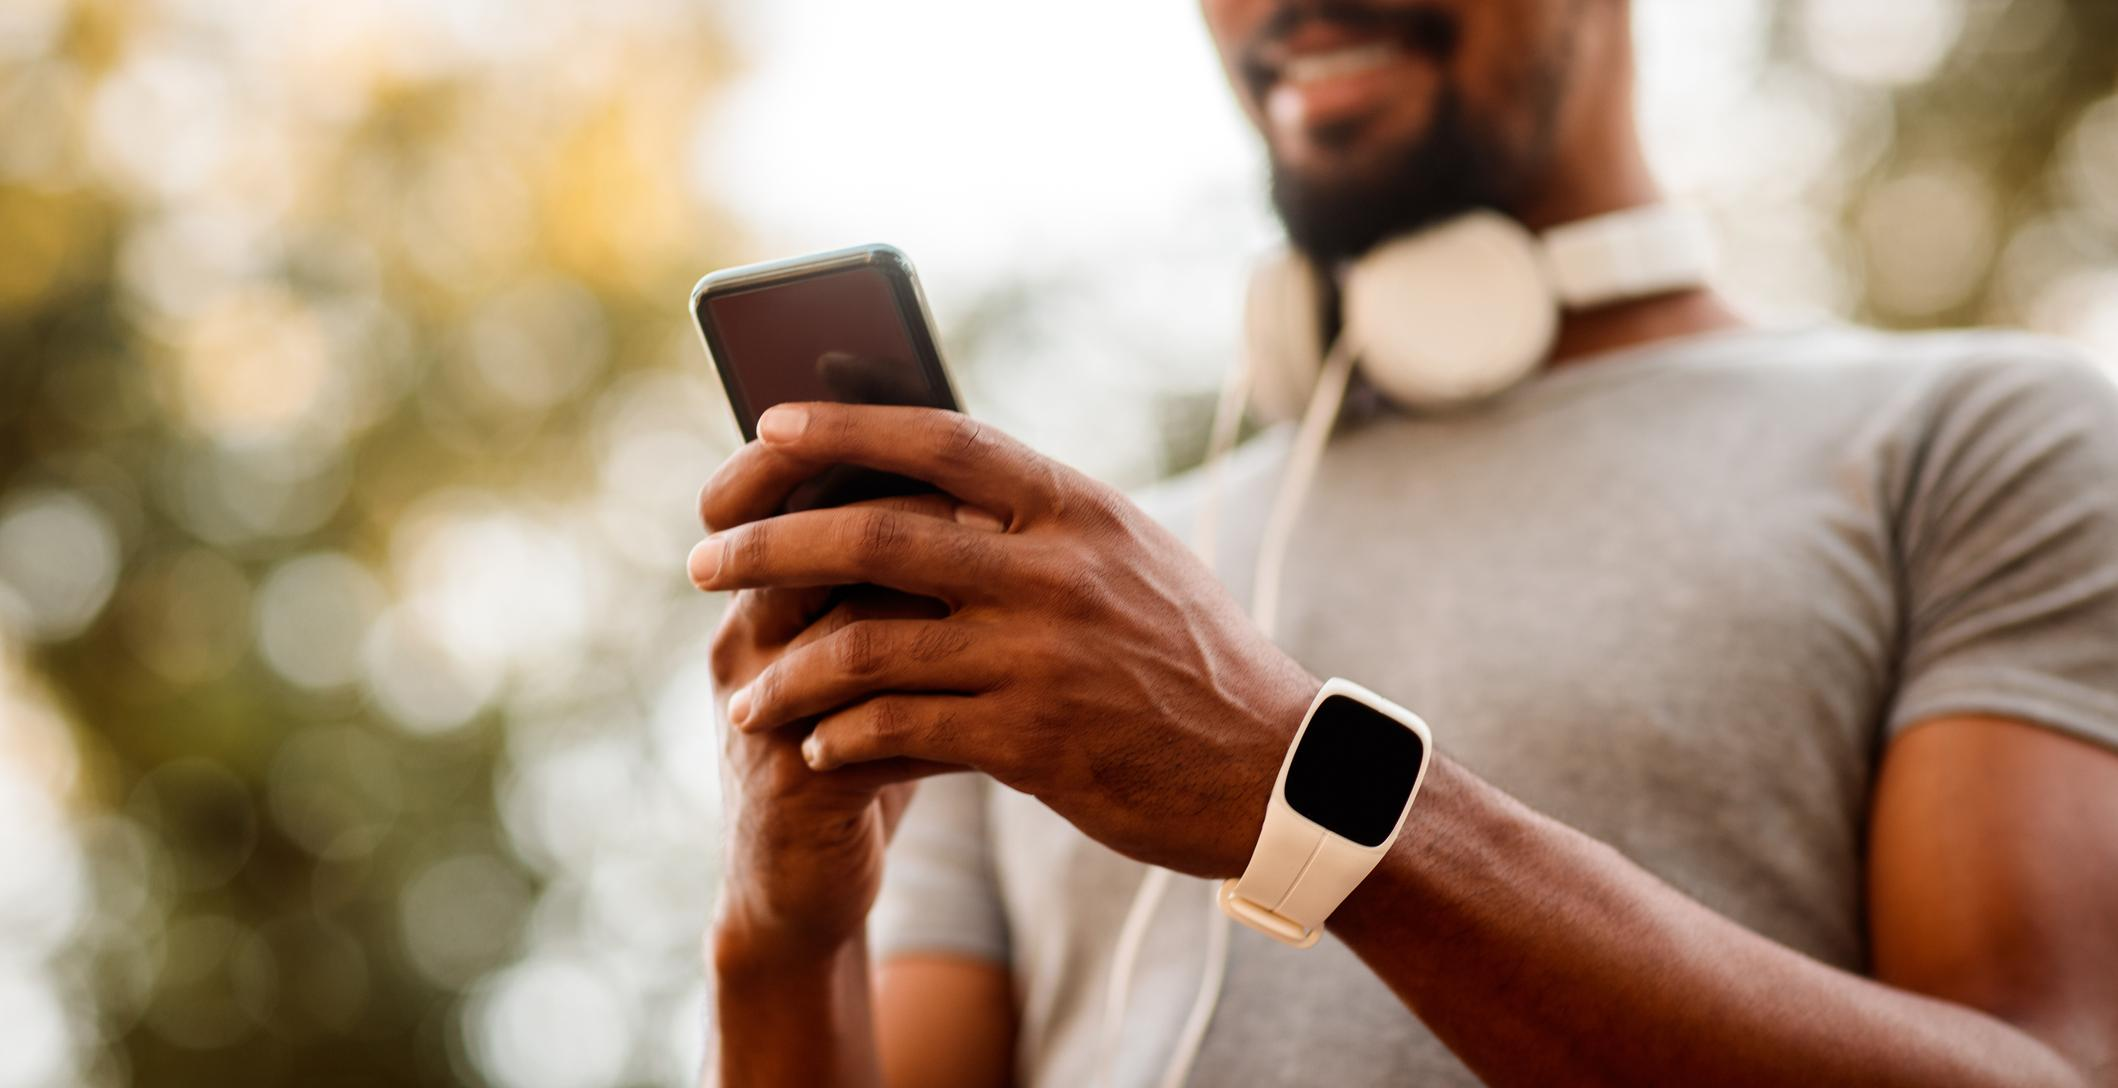 6 Tips for Protecting Your Mobile Device